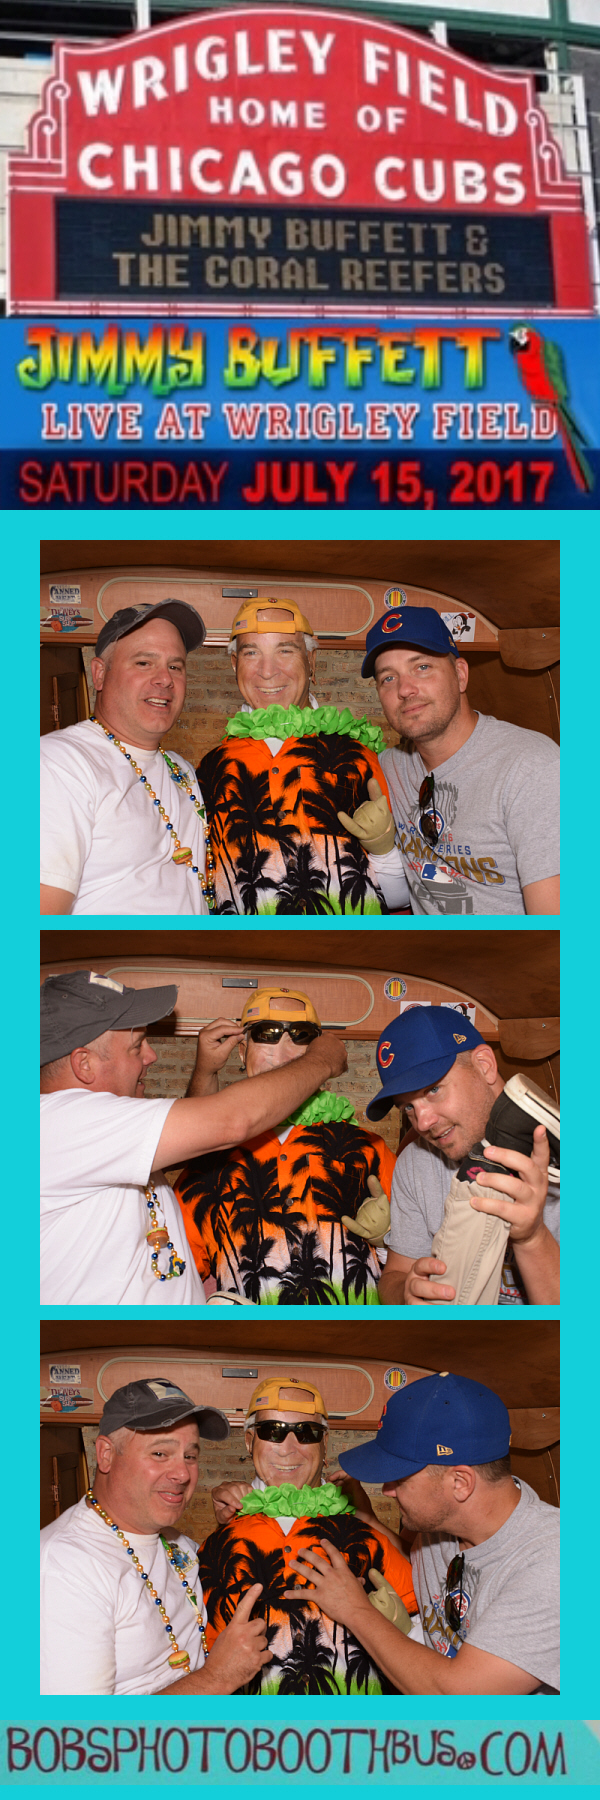 Jimmy Buffett final photo strip graphic_33.jpg